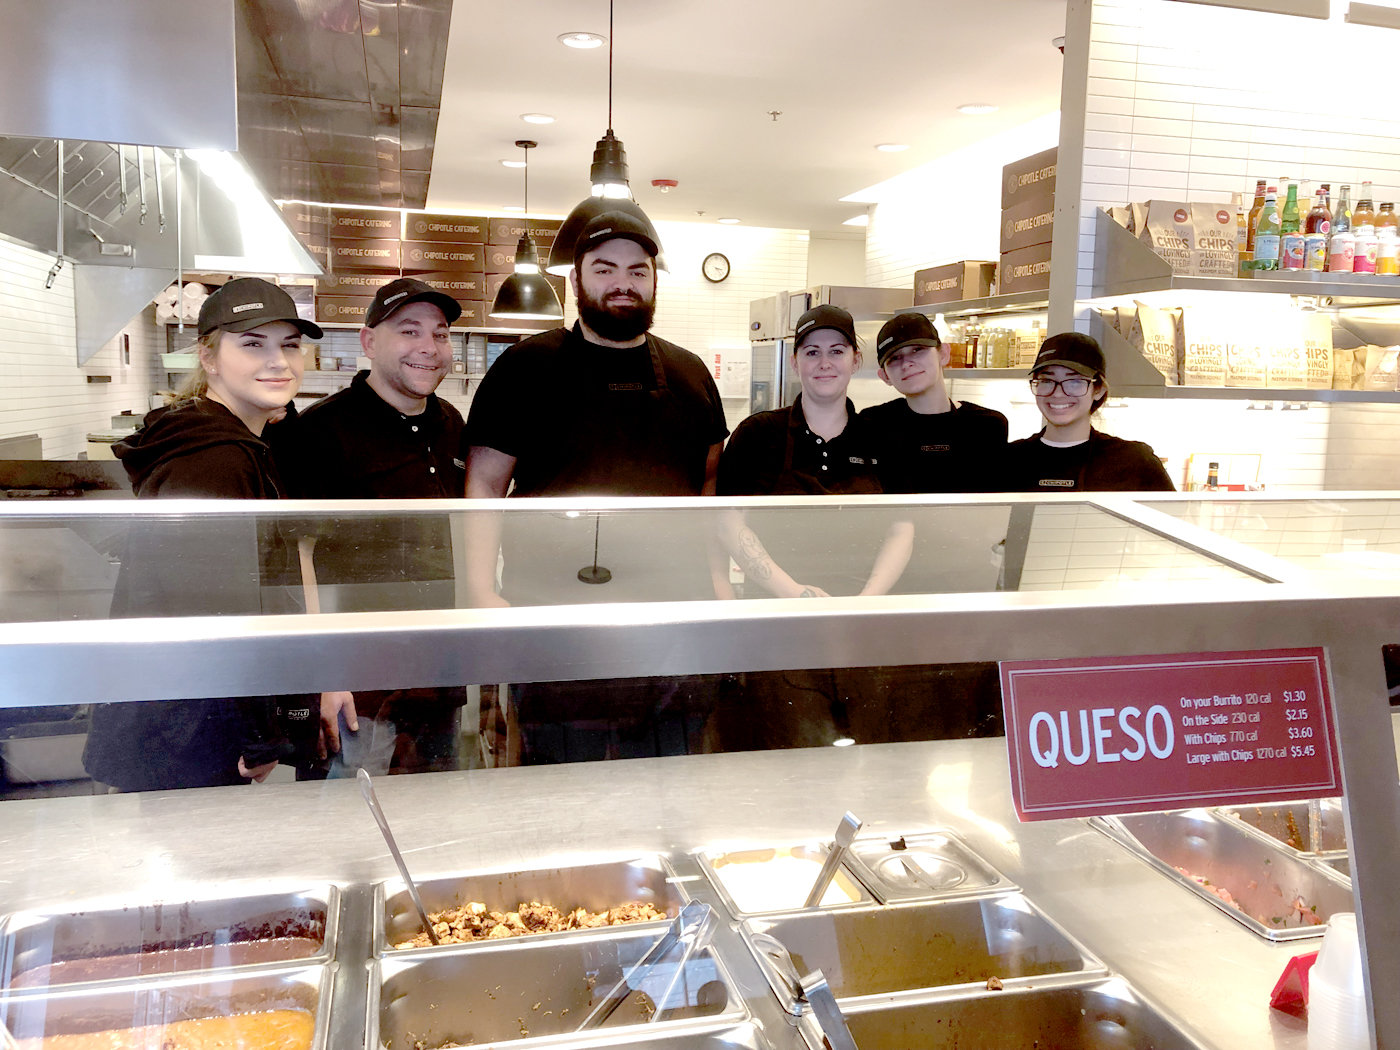 FAMILY ENVIRONMENT: Kenny took a group shot with some members of his Chipotle family (from left) Alyssa, Jason, Rachel, Shyanna and Yolymar.